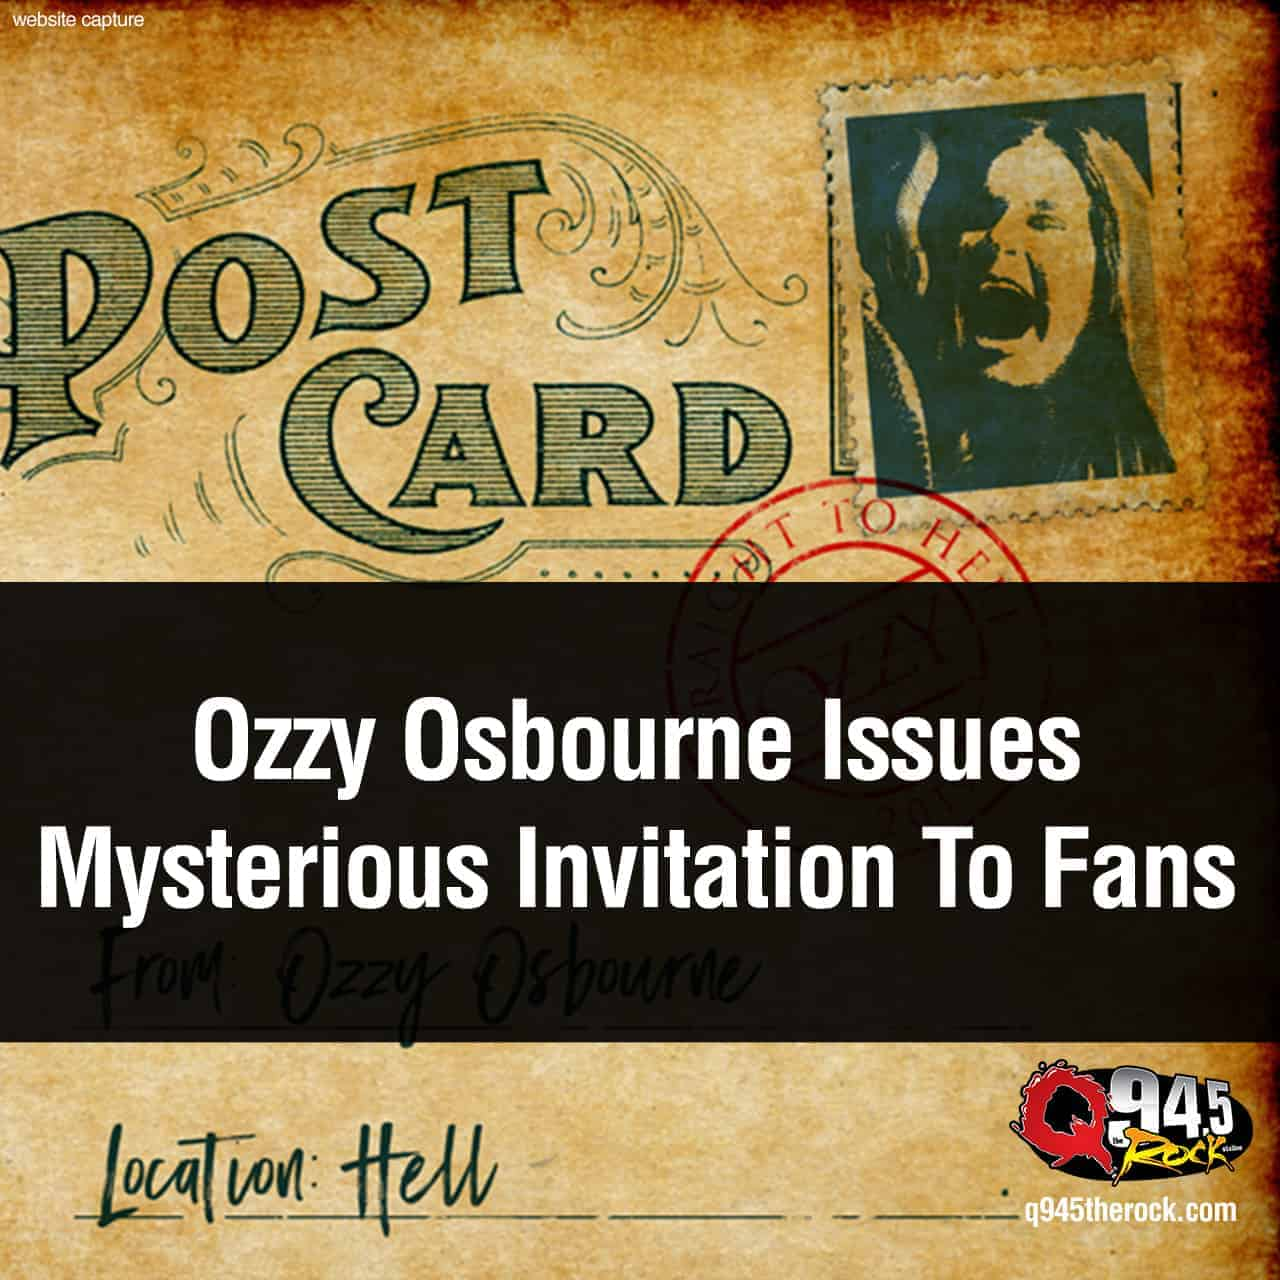 Ozzy Osbourne Issues Mysterious Invitation To Fans